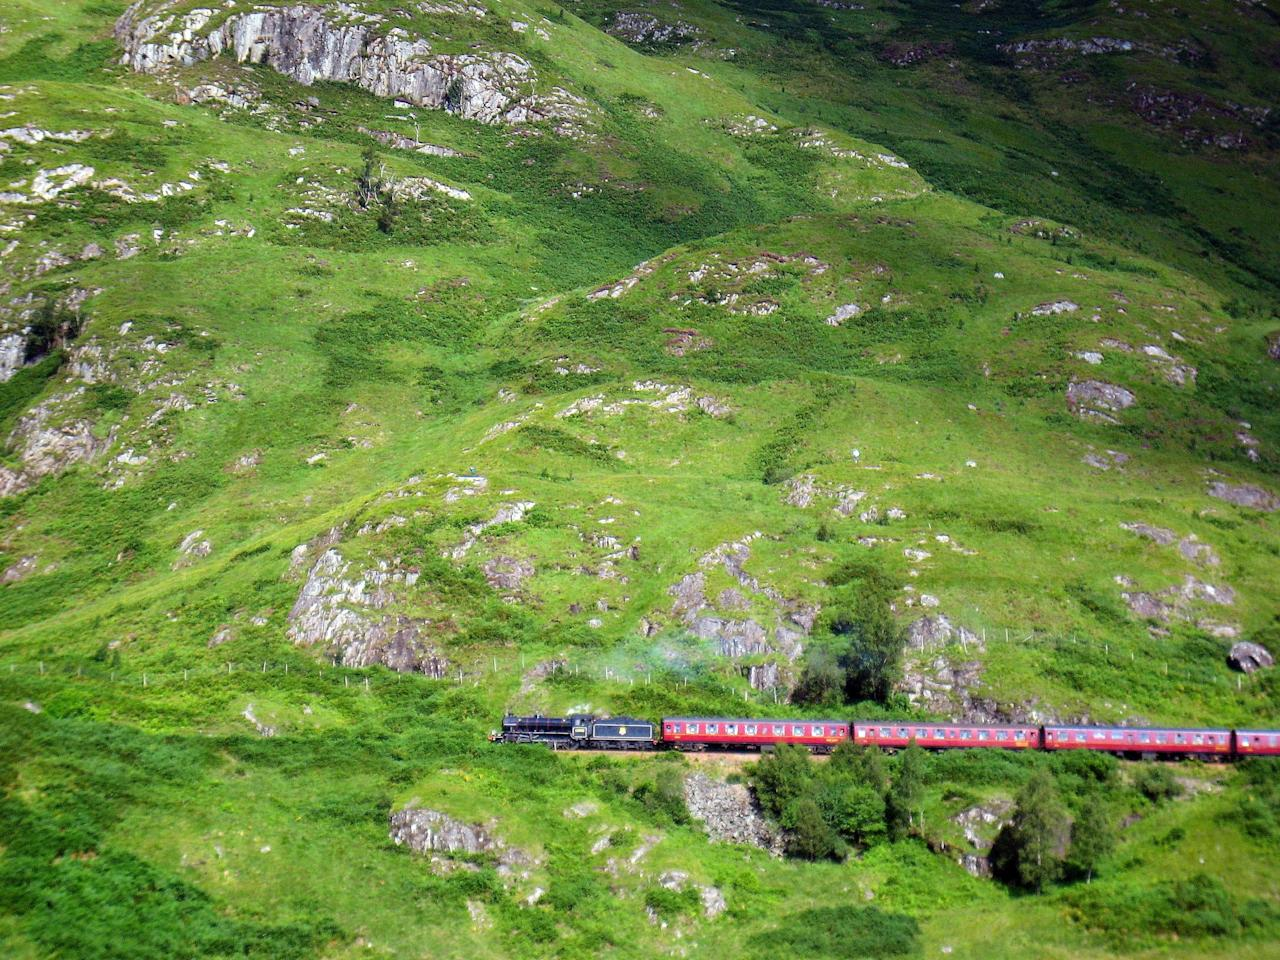 <p>The Jacobite steam train runs from Fort William in Scotland to Mallaig on the west coast of Scotland. The train ride gives great views of the rolling Scottish hills and passes over the same bridge that the Hogwarts Express runs through in the Harry Potter movies. Unfortunately, The Jacobite is lacking when it comes to pumpkin pasties and chocolate frogs.</p>